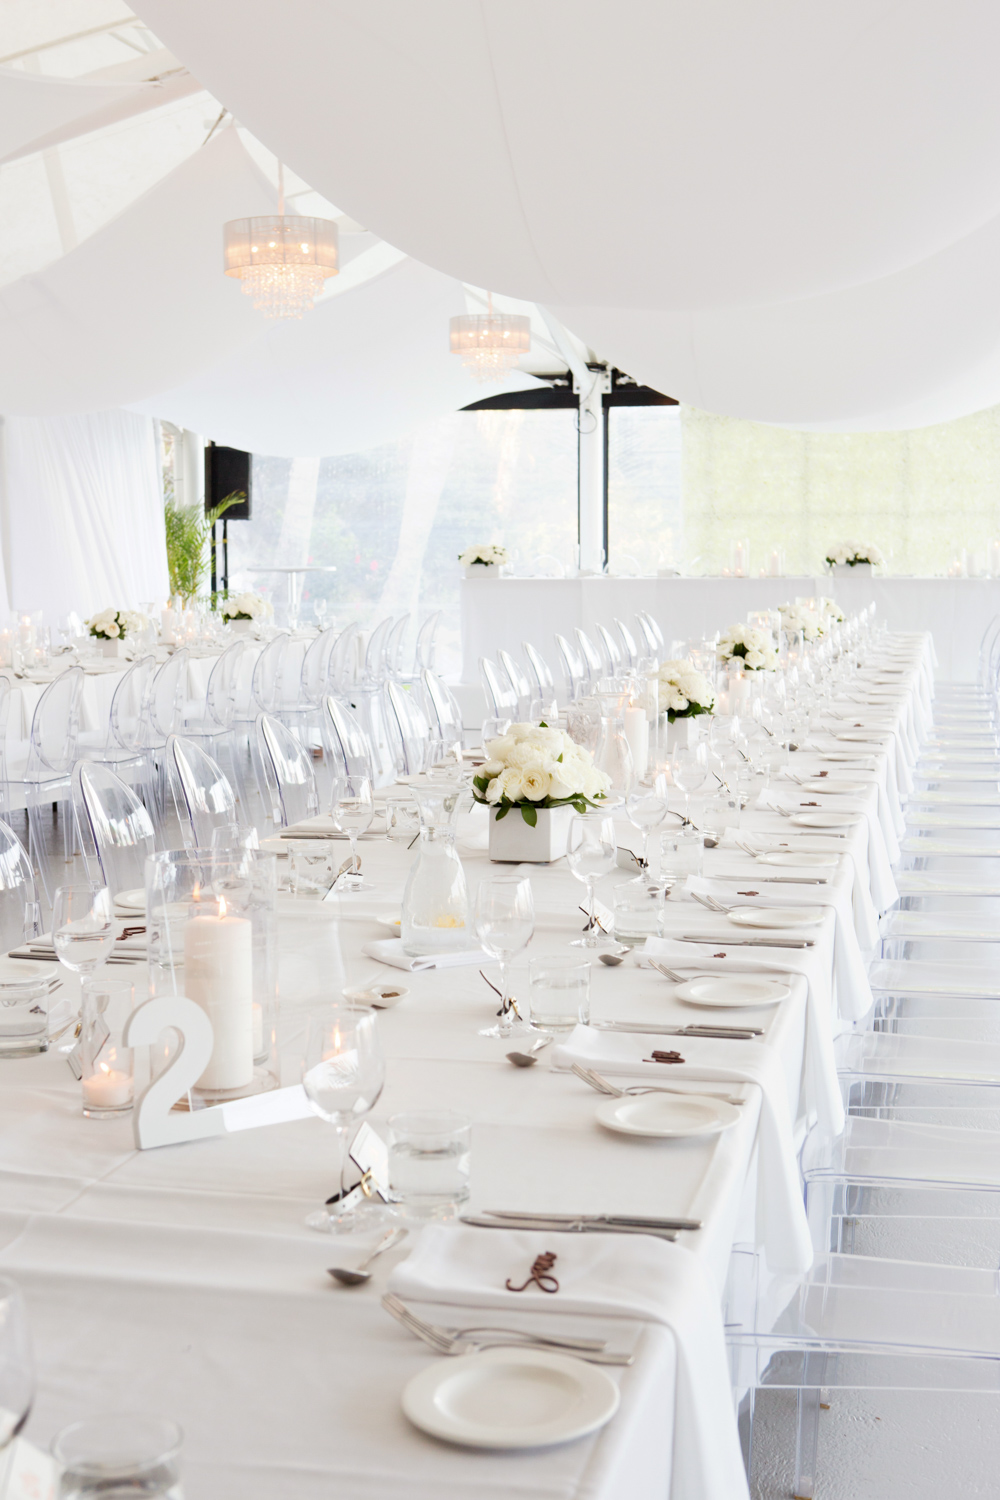 wedding-0153-outrigger-reception-white-clear-chairs-australia.jpg